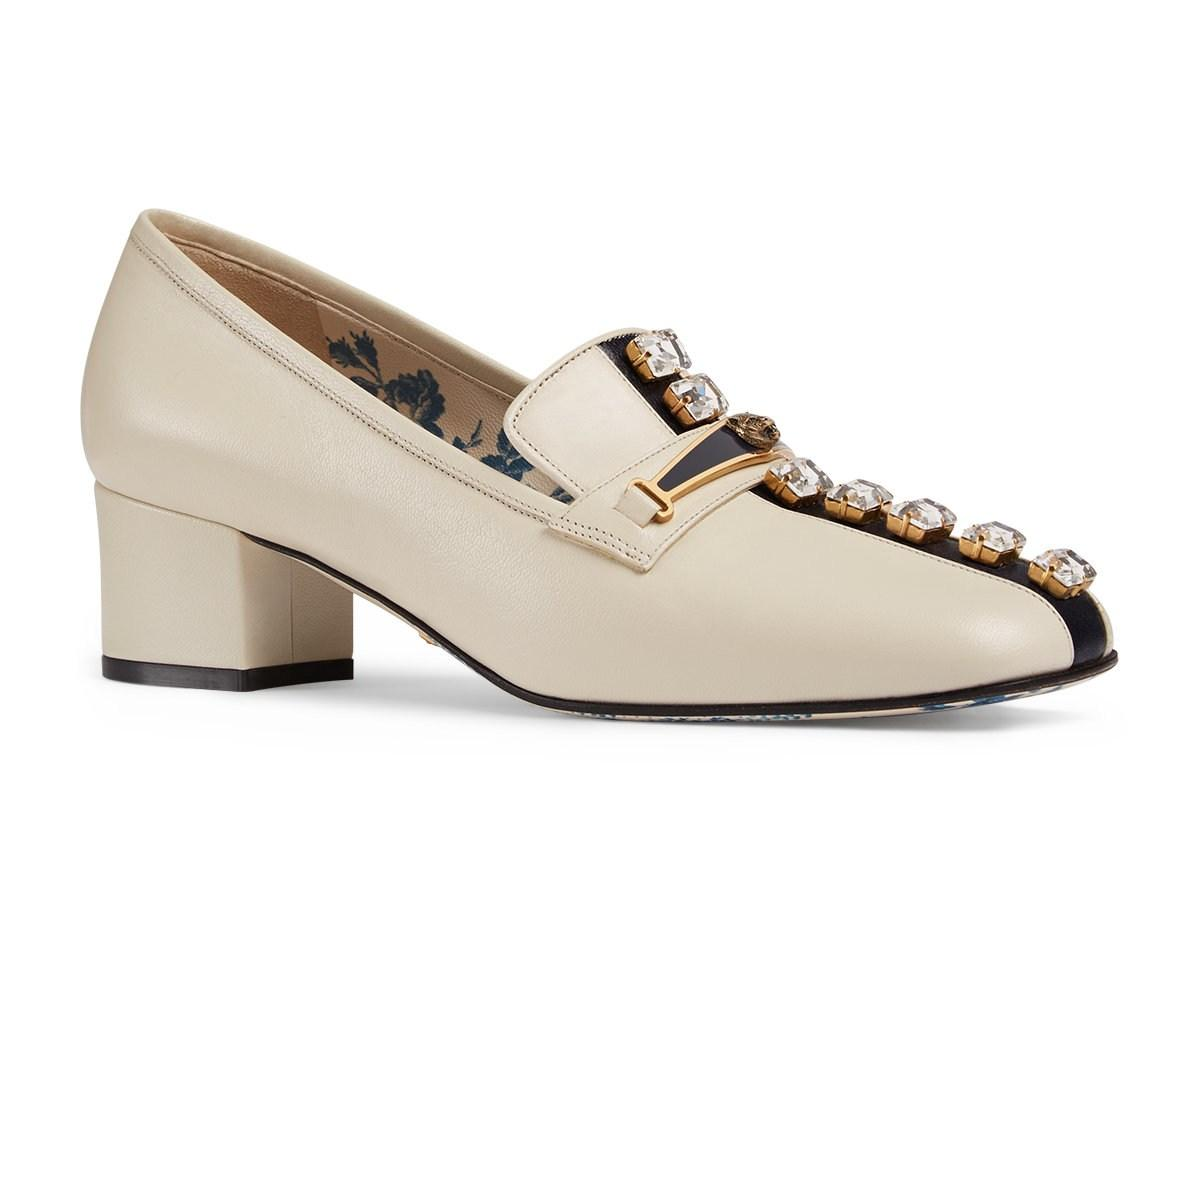 8b6f6bc77b7 Lyst - Gucci Leather Pumps in White